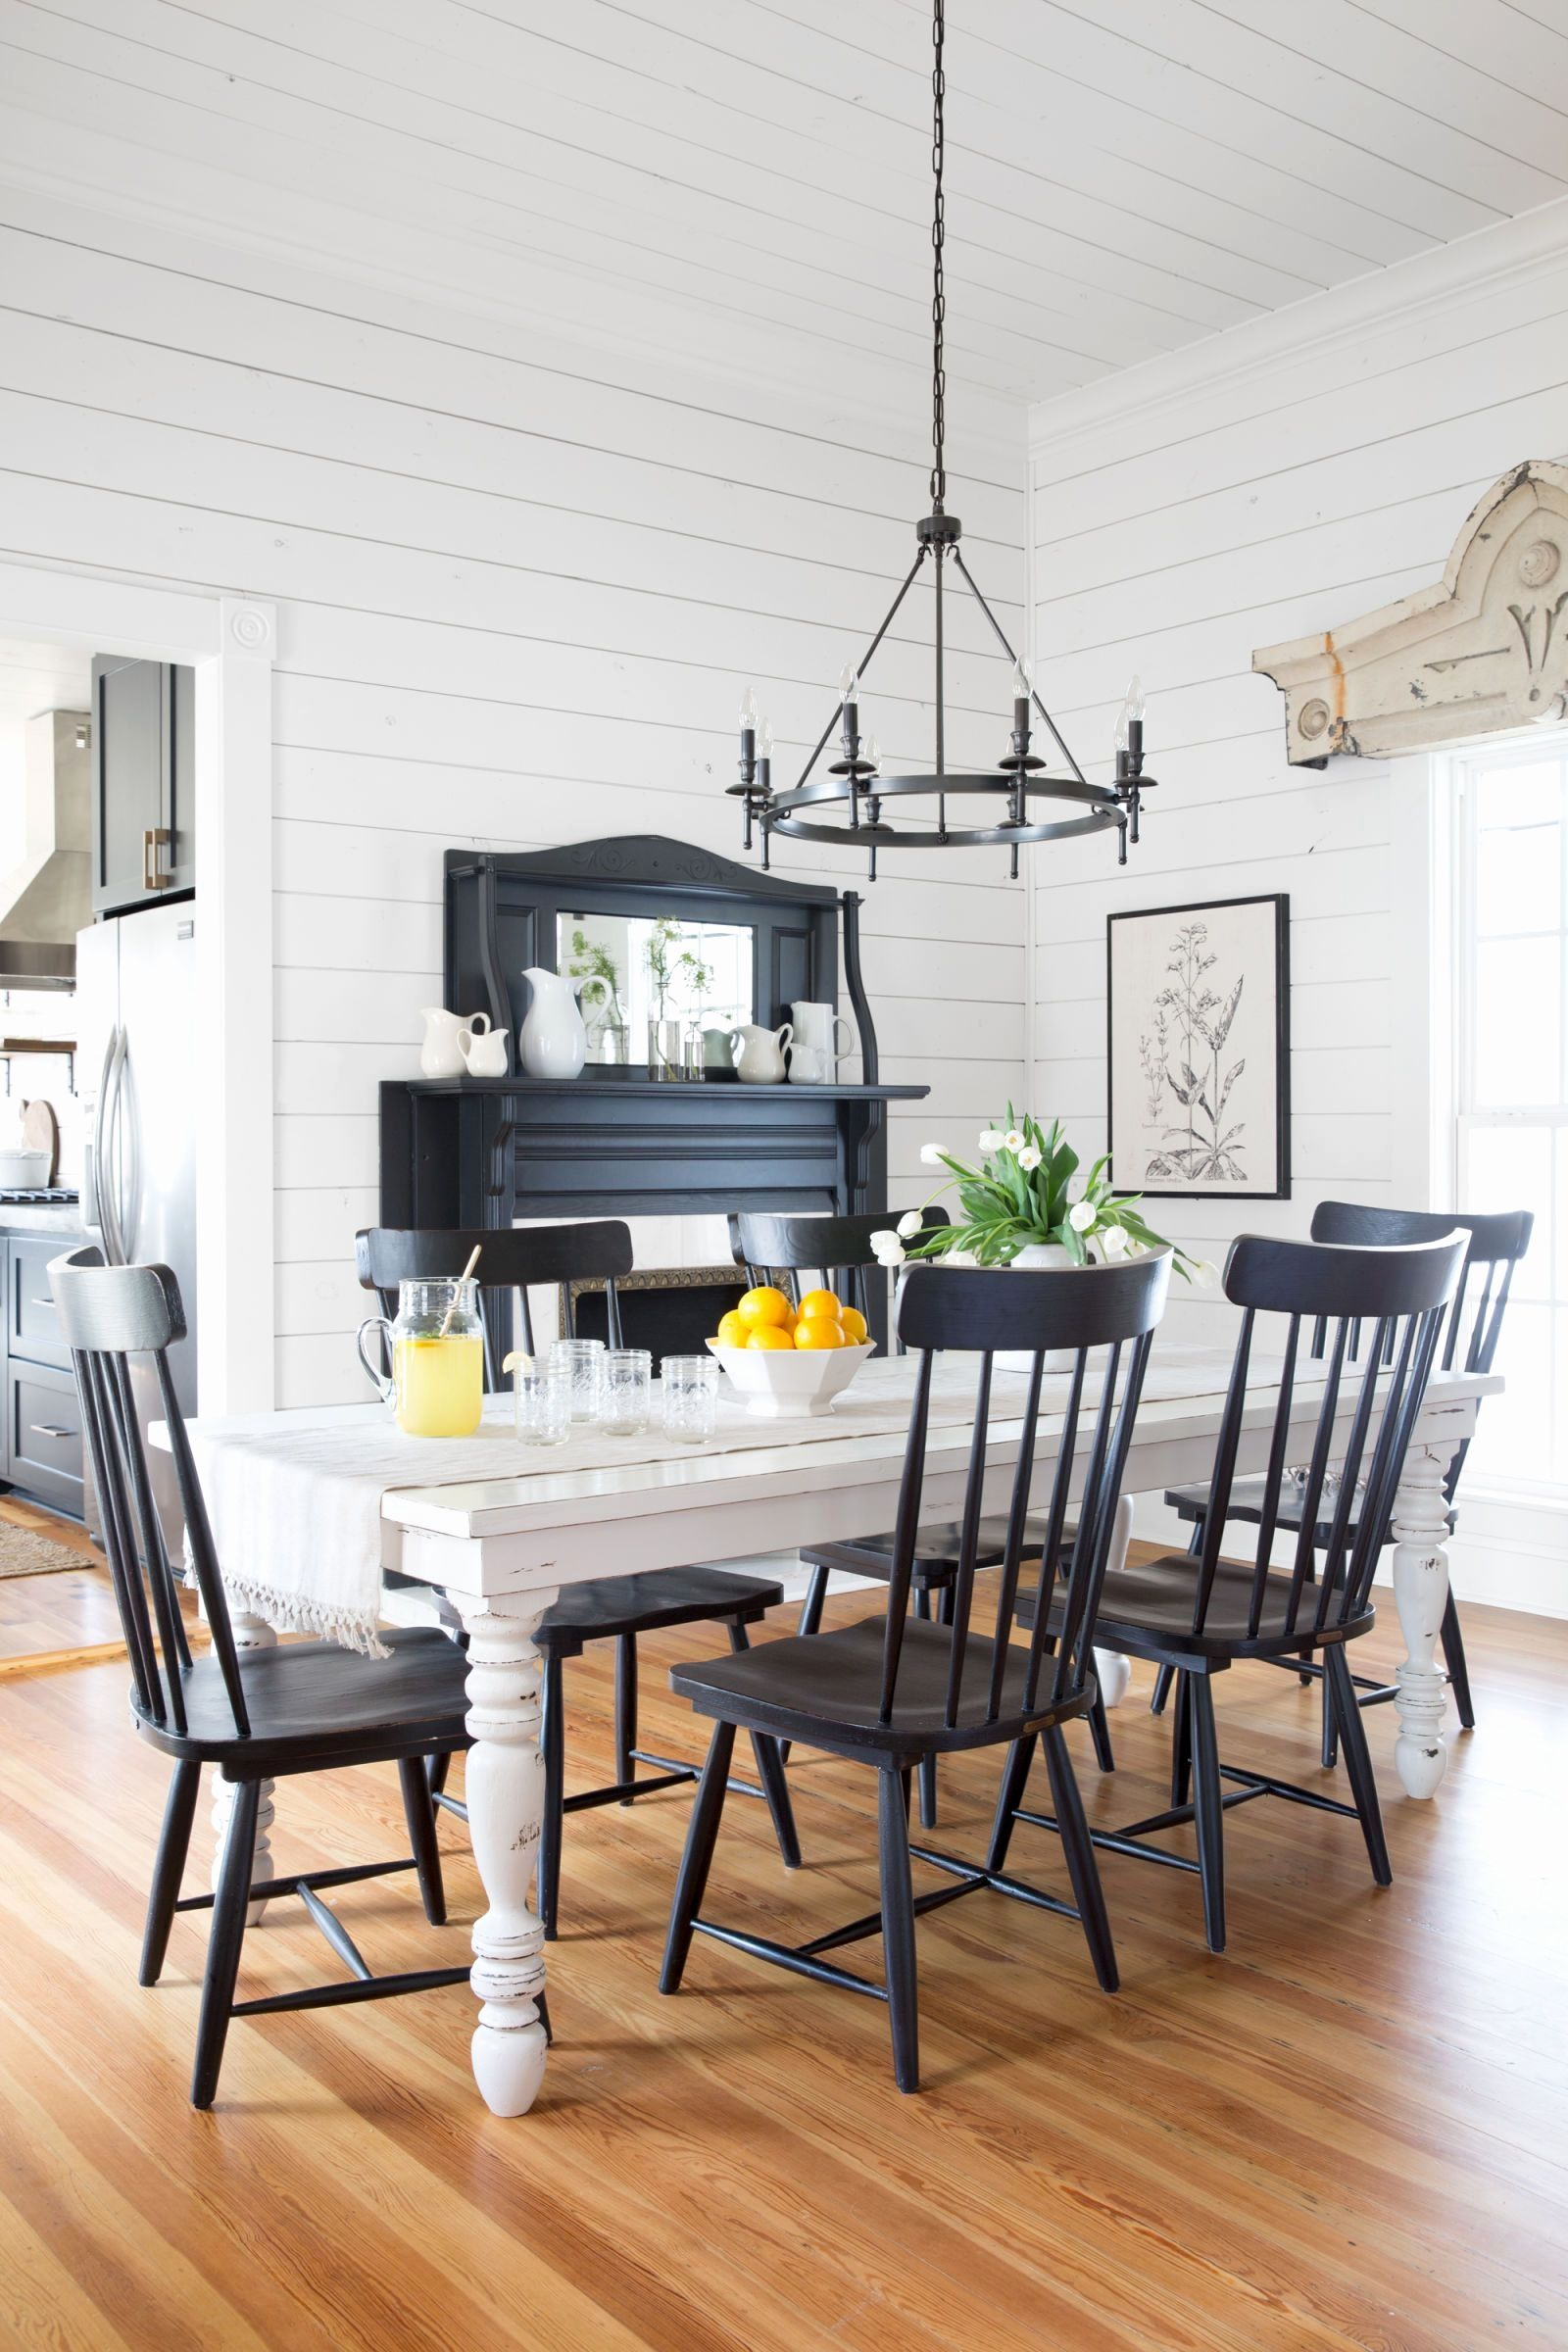 Hgtv Dining Room New Take A tour Of Chip and Joanna Gaines ...